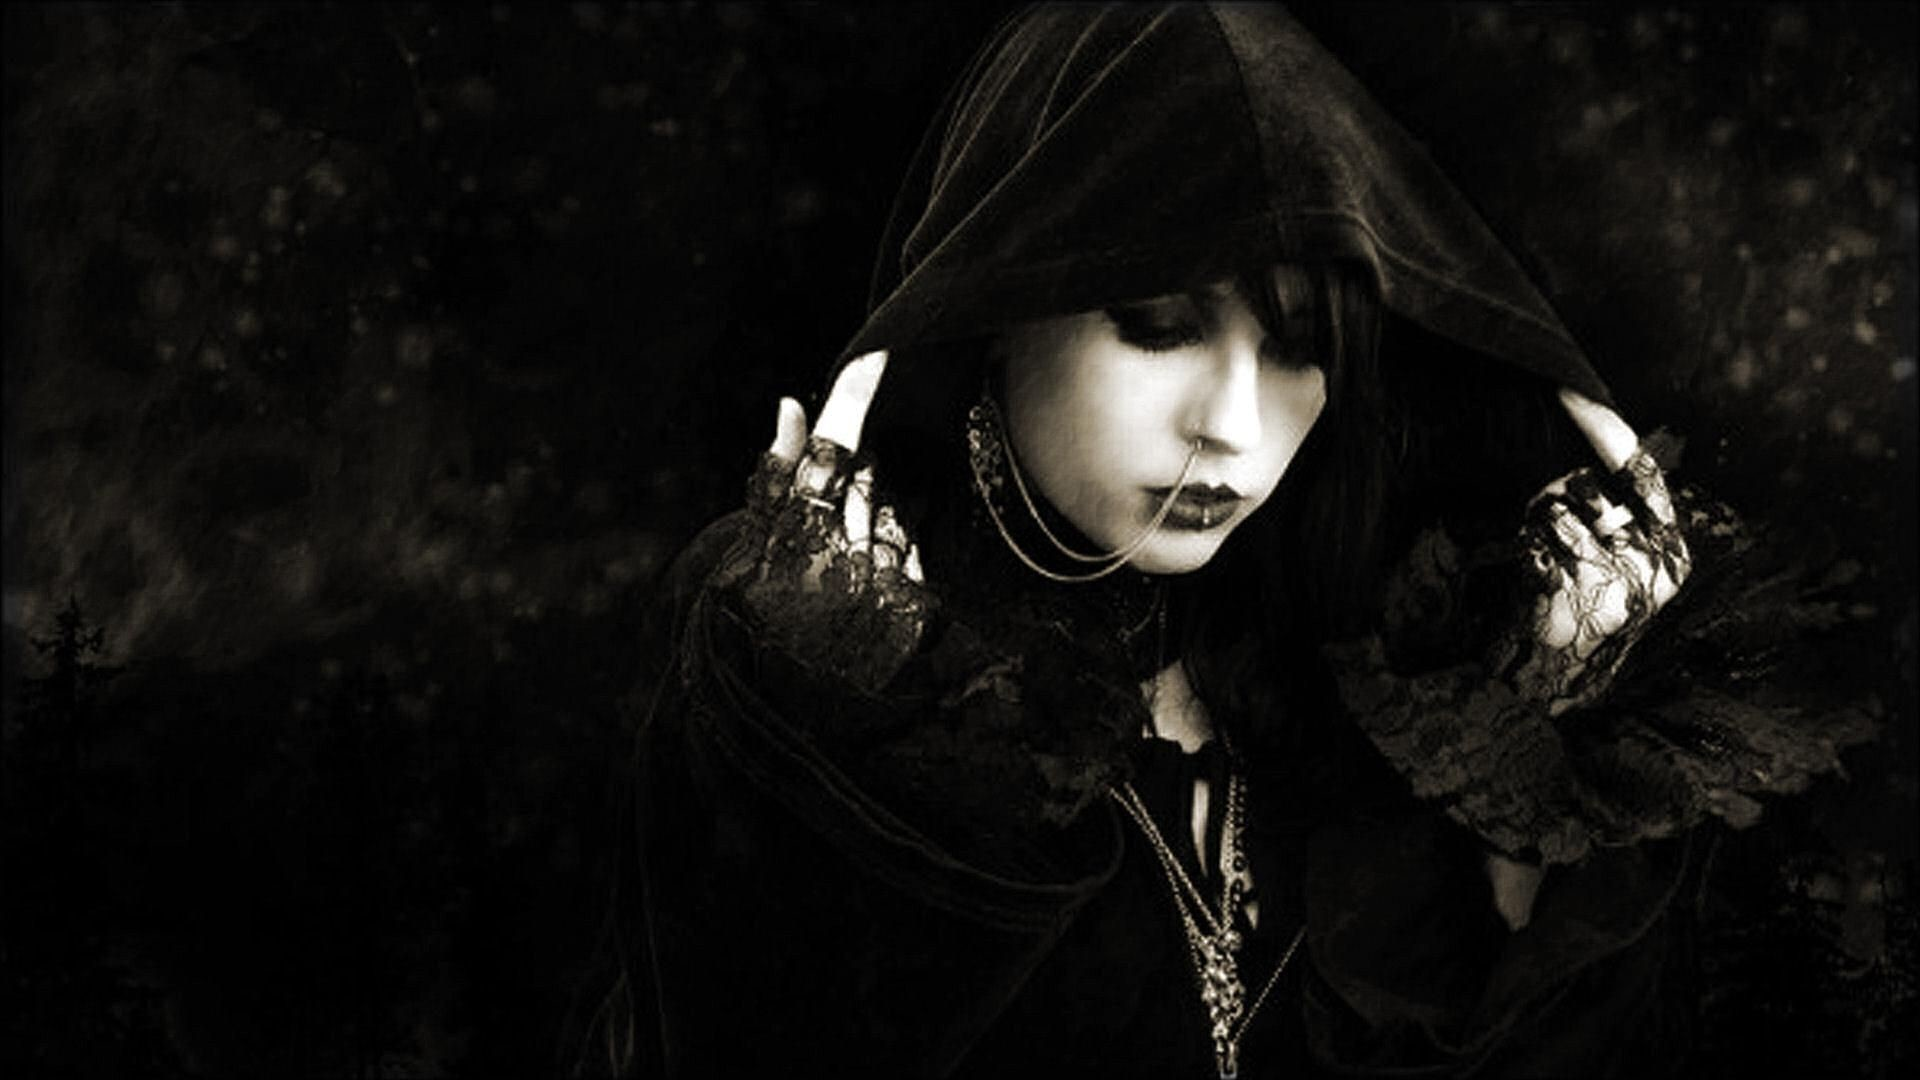 Res: 1920x1080, Dark Haired Gothic Girl | dark-girl-goth-gothic-mysterious-white-free-hd- wallpapers-100